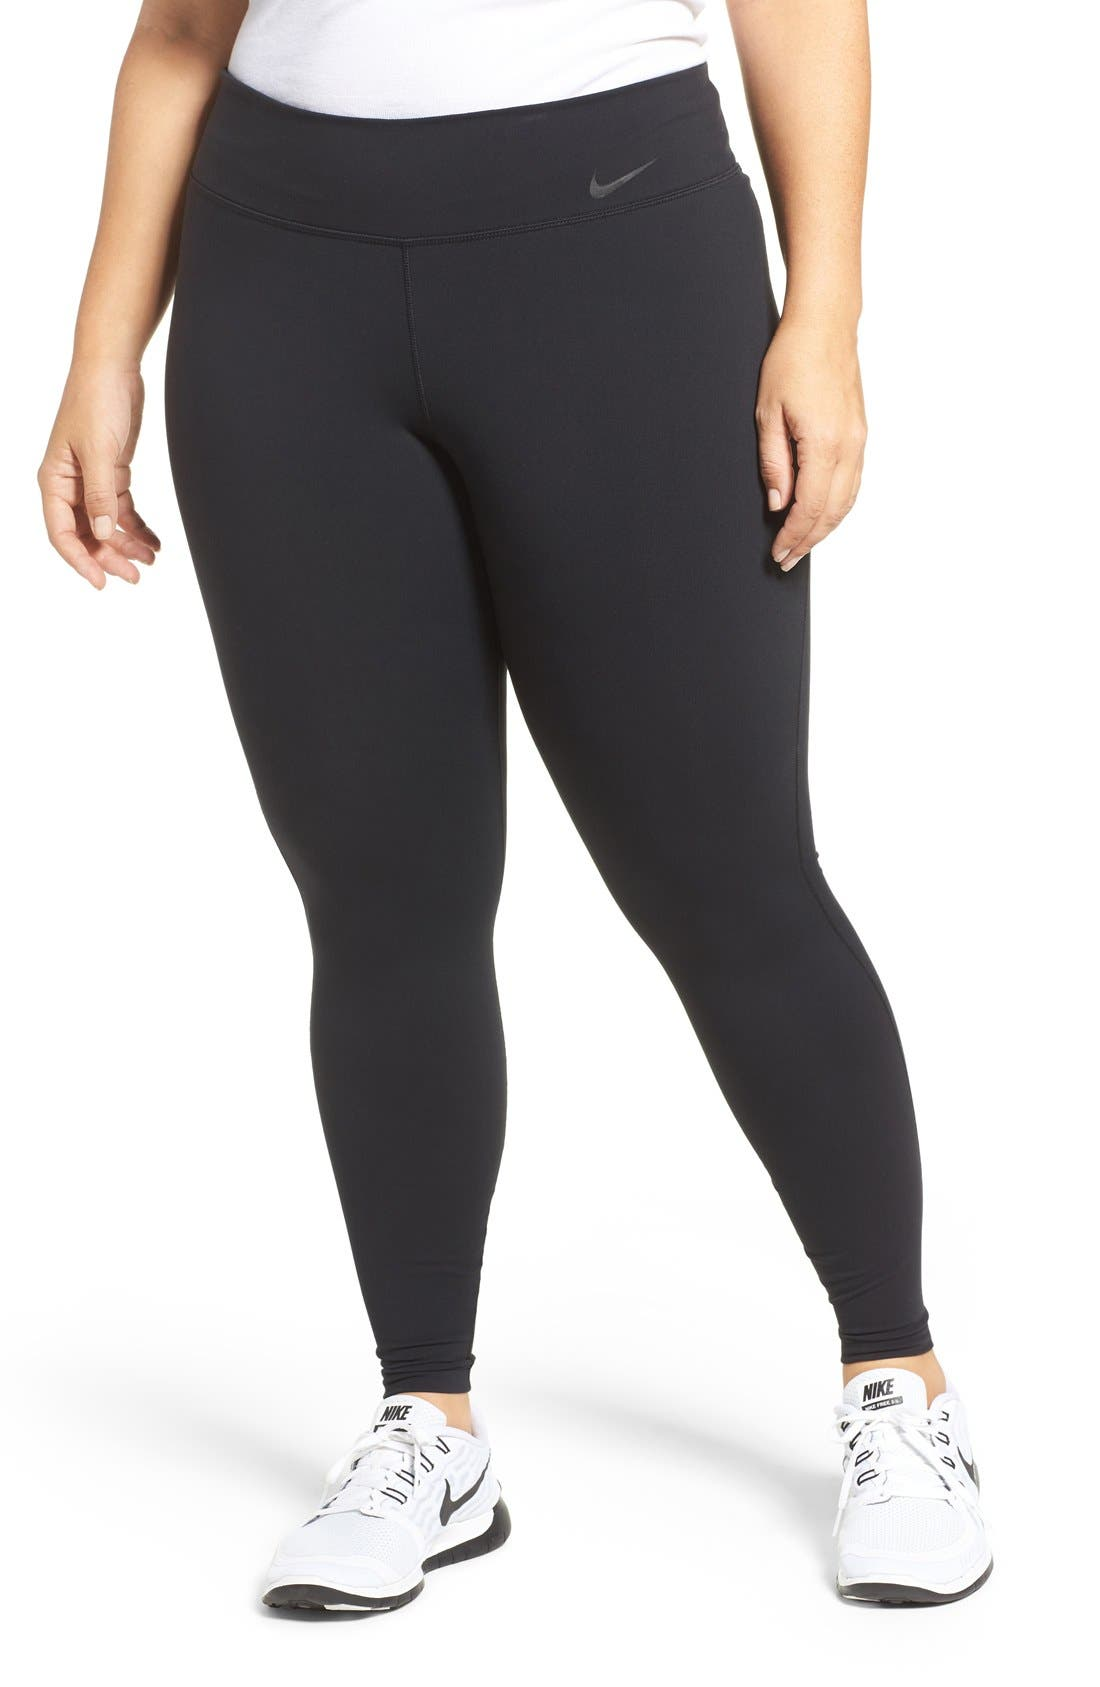 NIKE Power Legendary Training Tights